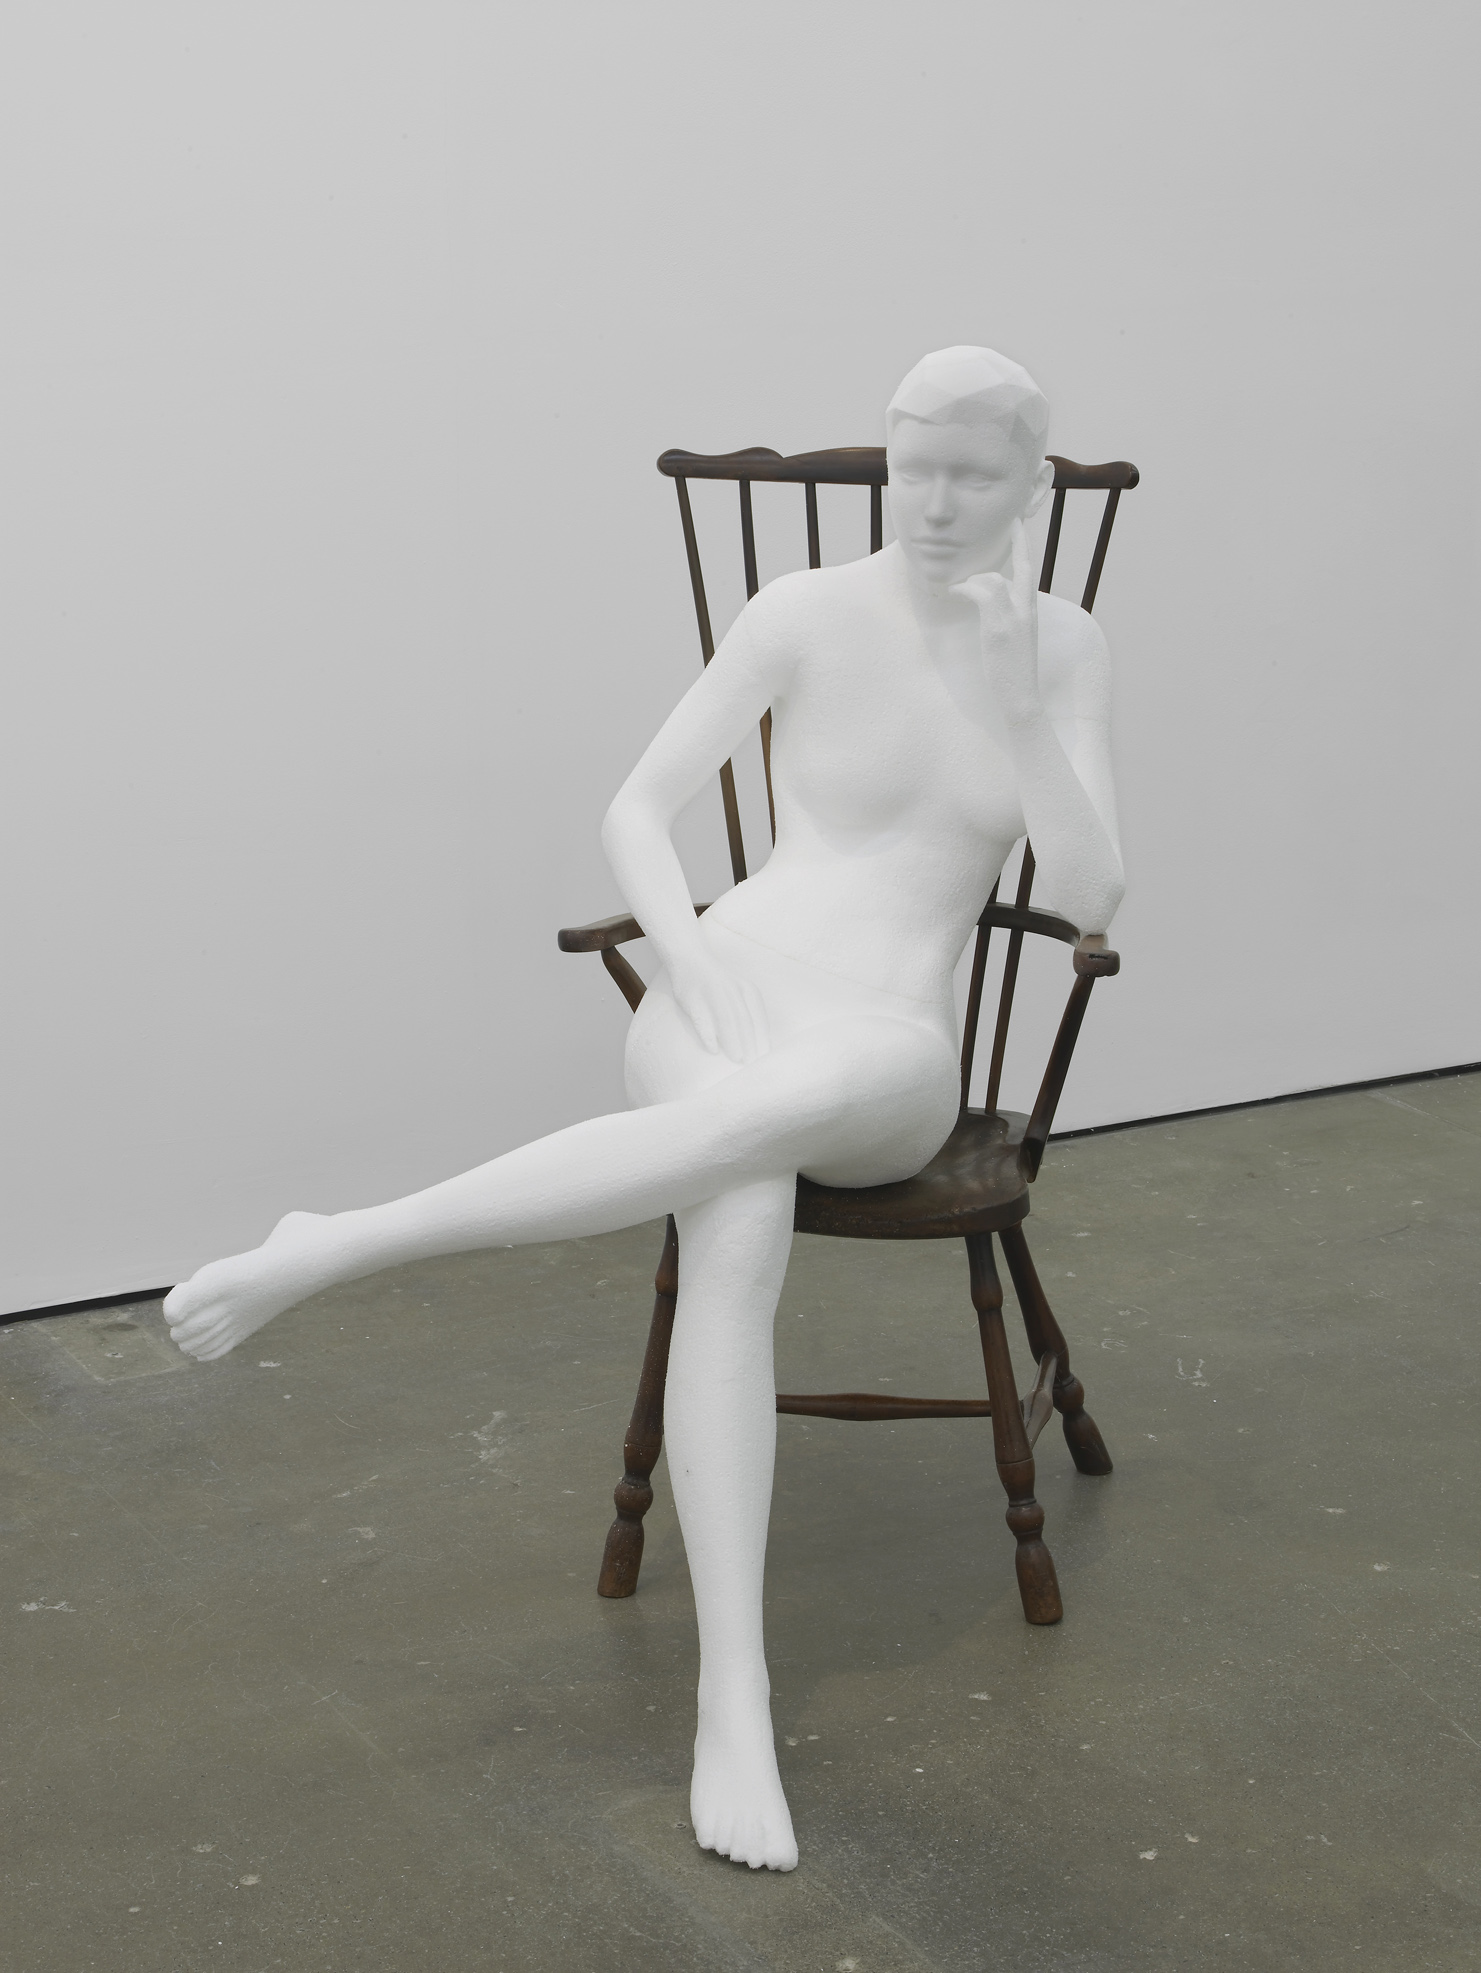 Seated Nude  2014  Polystyrene and 20th century Windsor chair  125 x 95 x 100 cm / 49.2 x 37.4 x 39.3 in